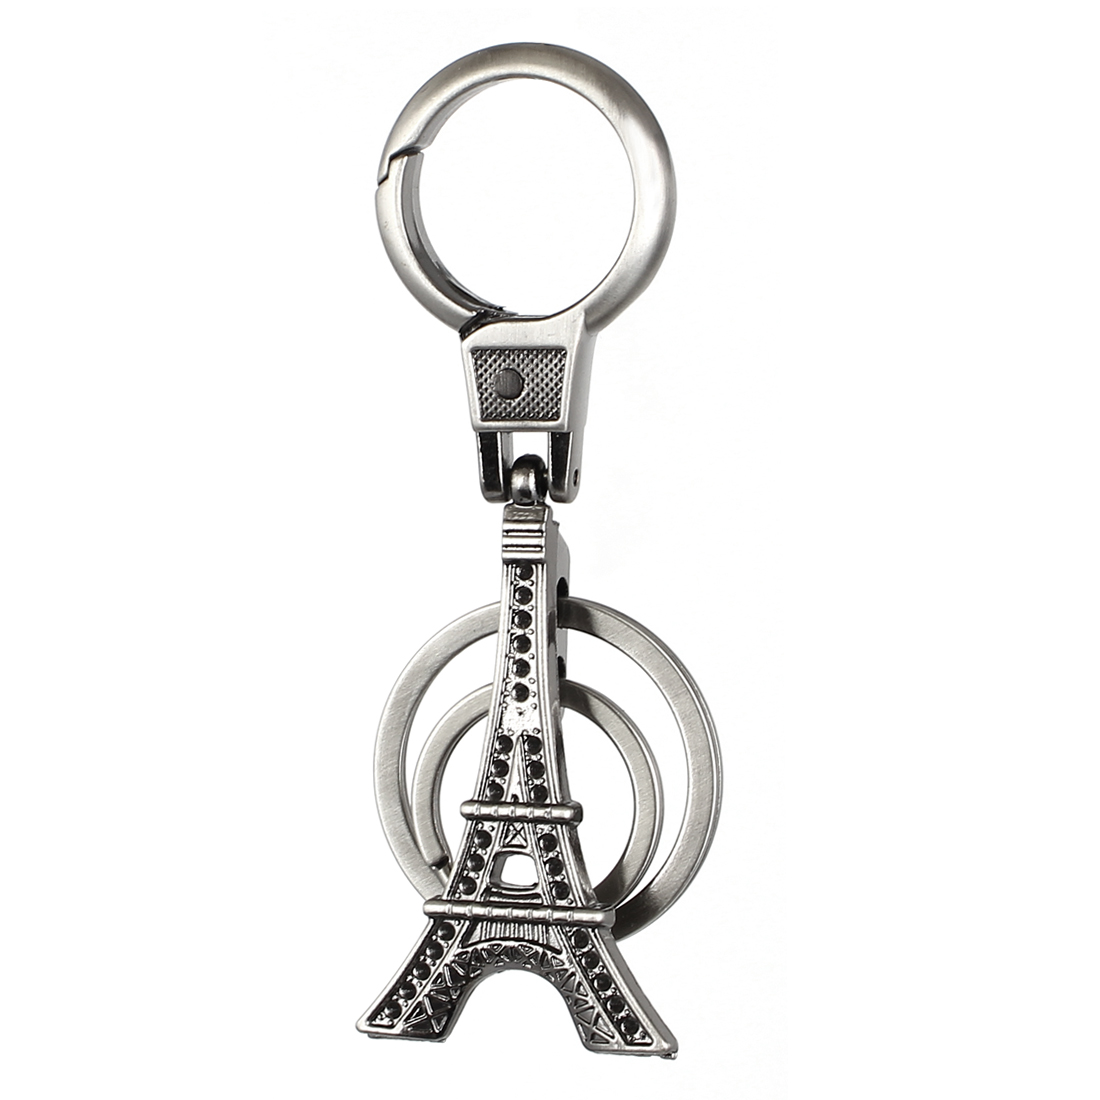 Metal Tower Shaped Pendant Carabiner Ring Clip Key Chain Keyring Decor Silver Tone